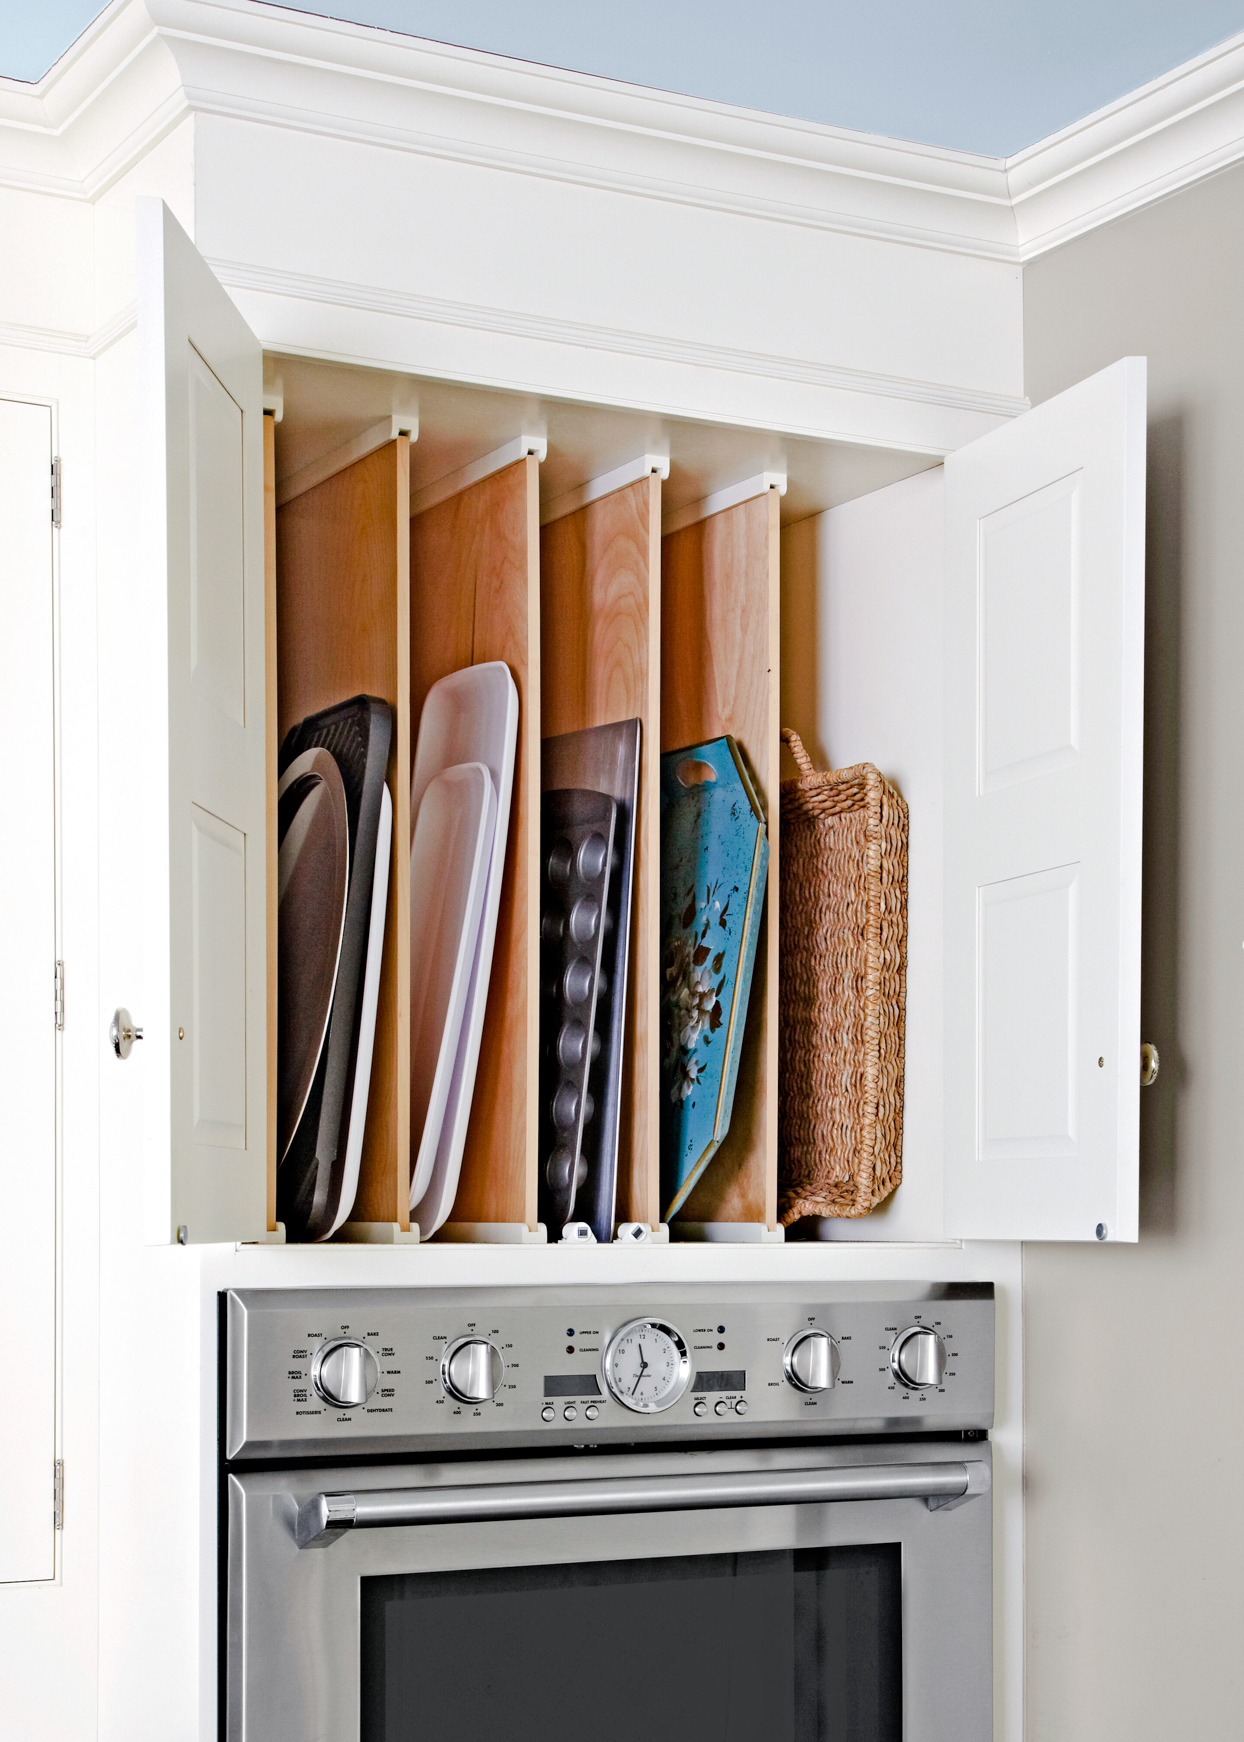 pan dividers in upper cabinets